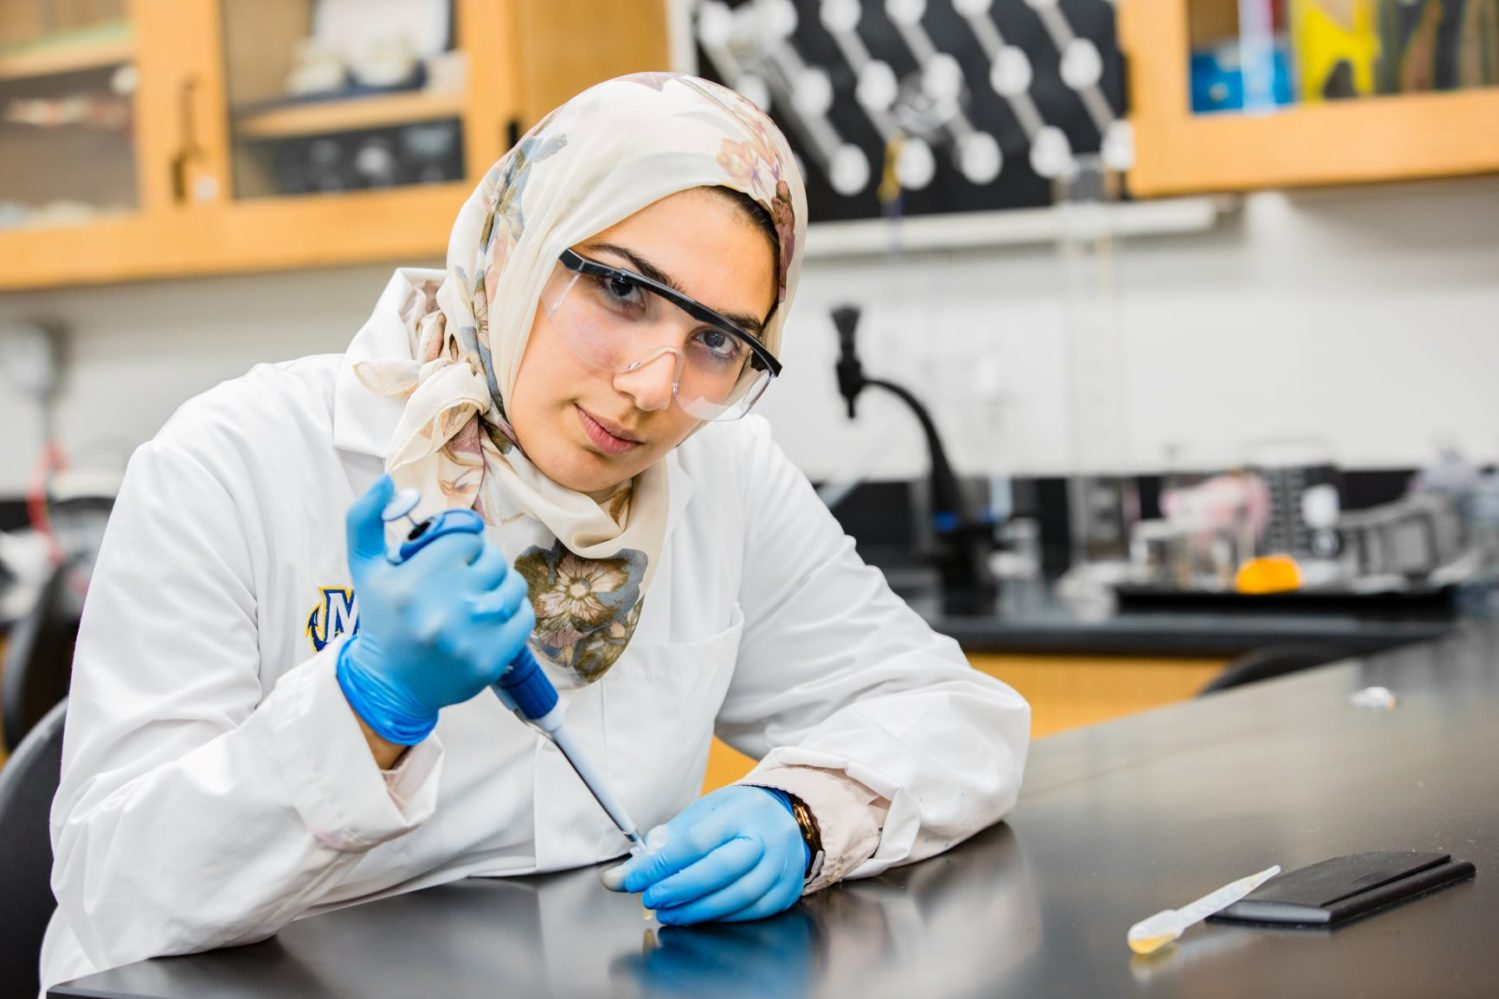 female student with headscarf in lab